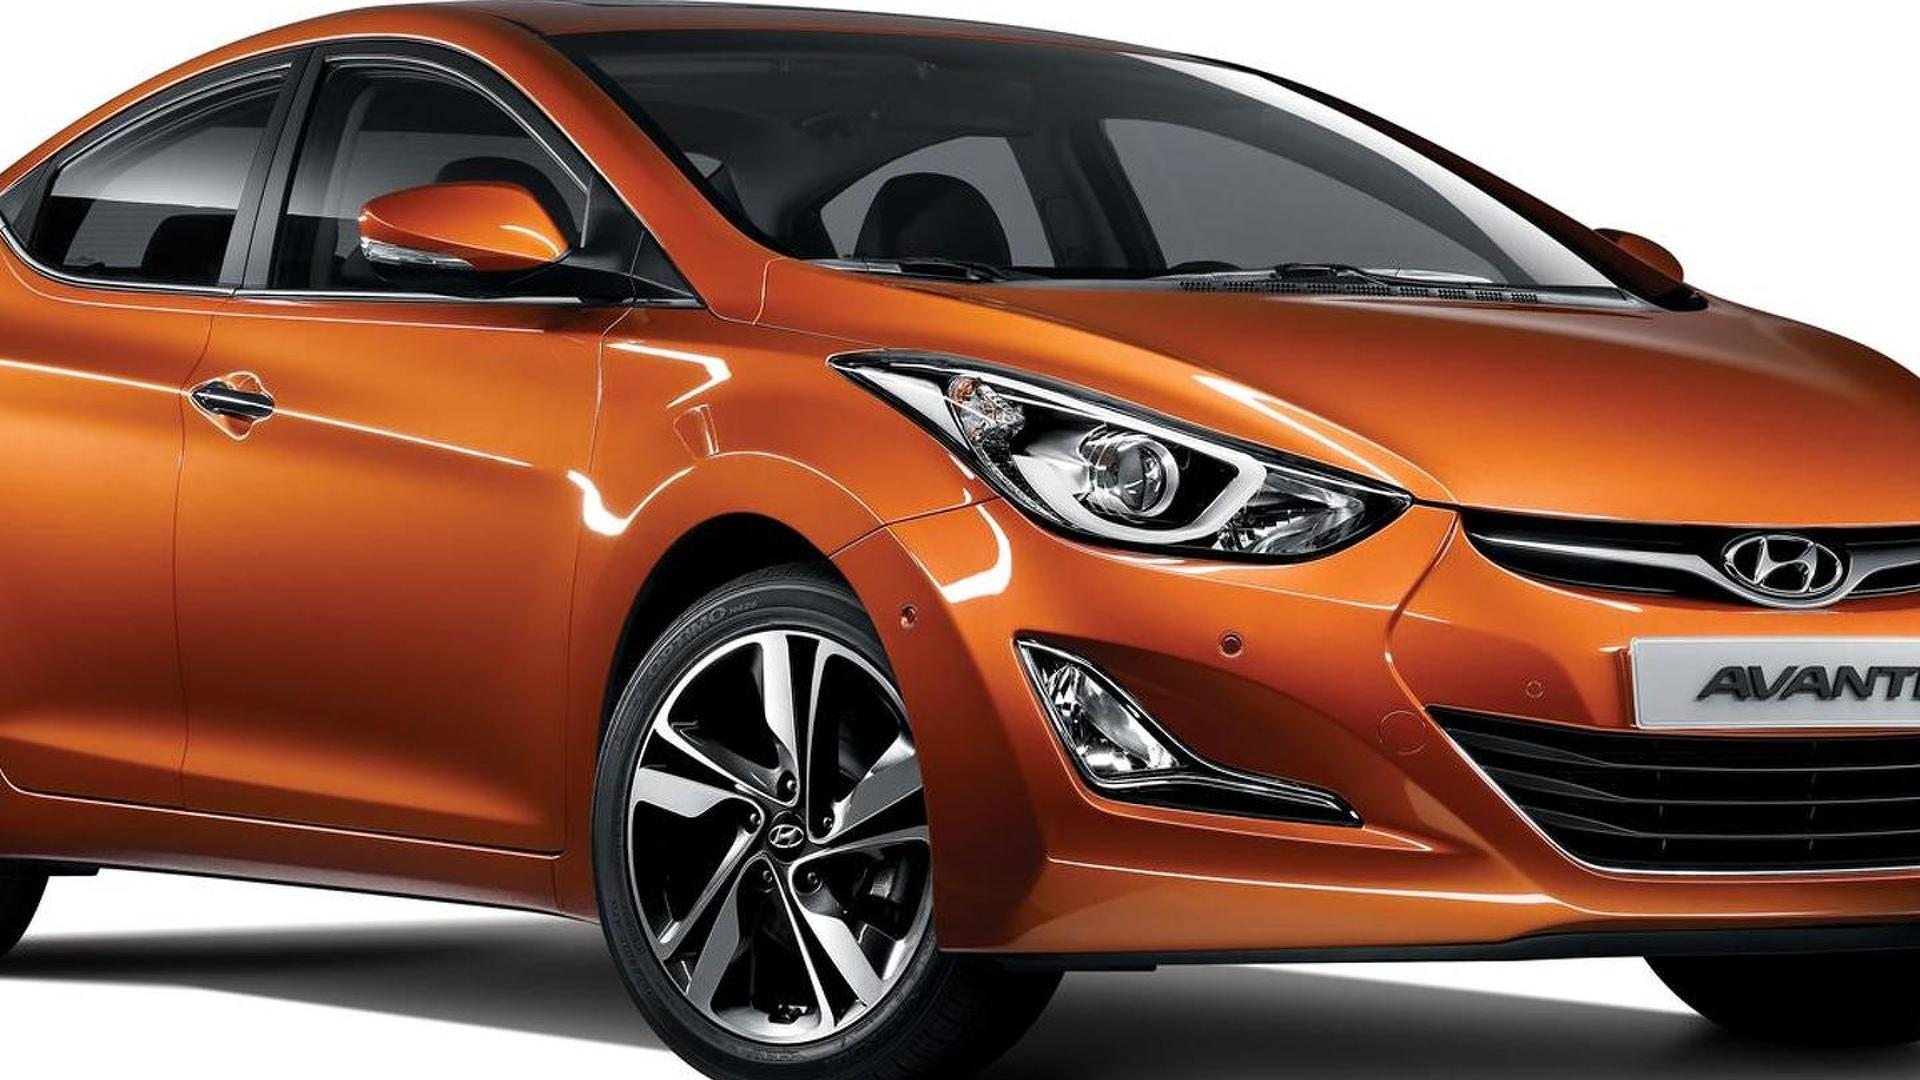 2014 Hyundai Avante / Elantra officially revealed